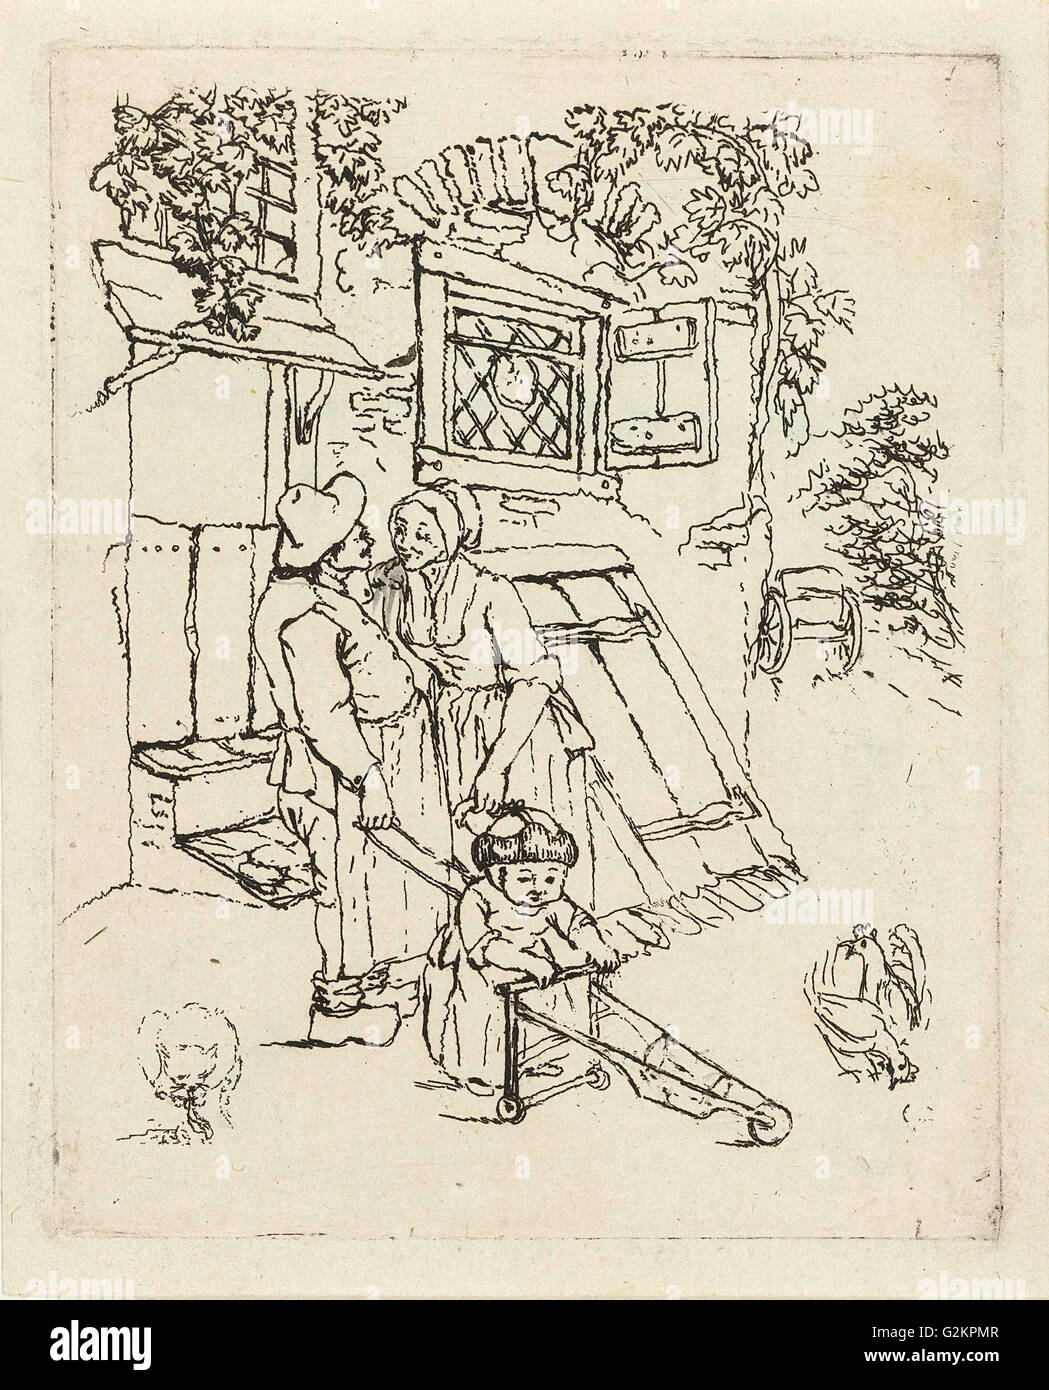 Farmer and his wife with child for a house, Marie Lambertine Coclers, 1776 - 1815 - Stock Image